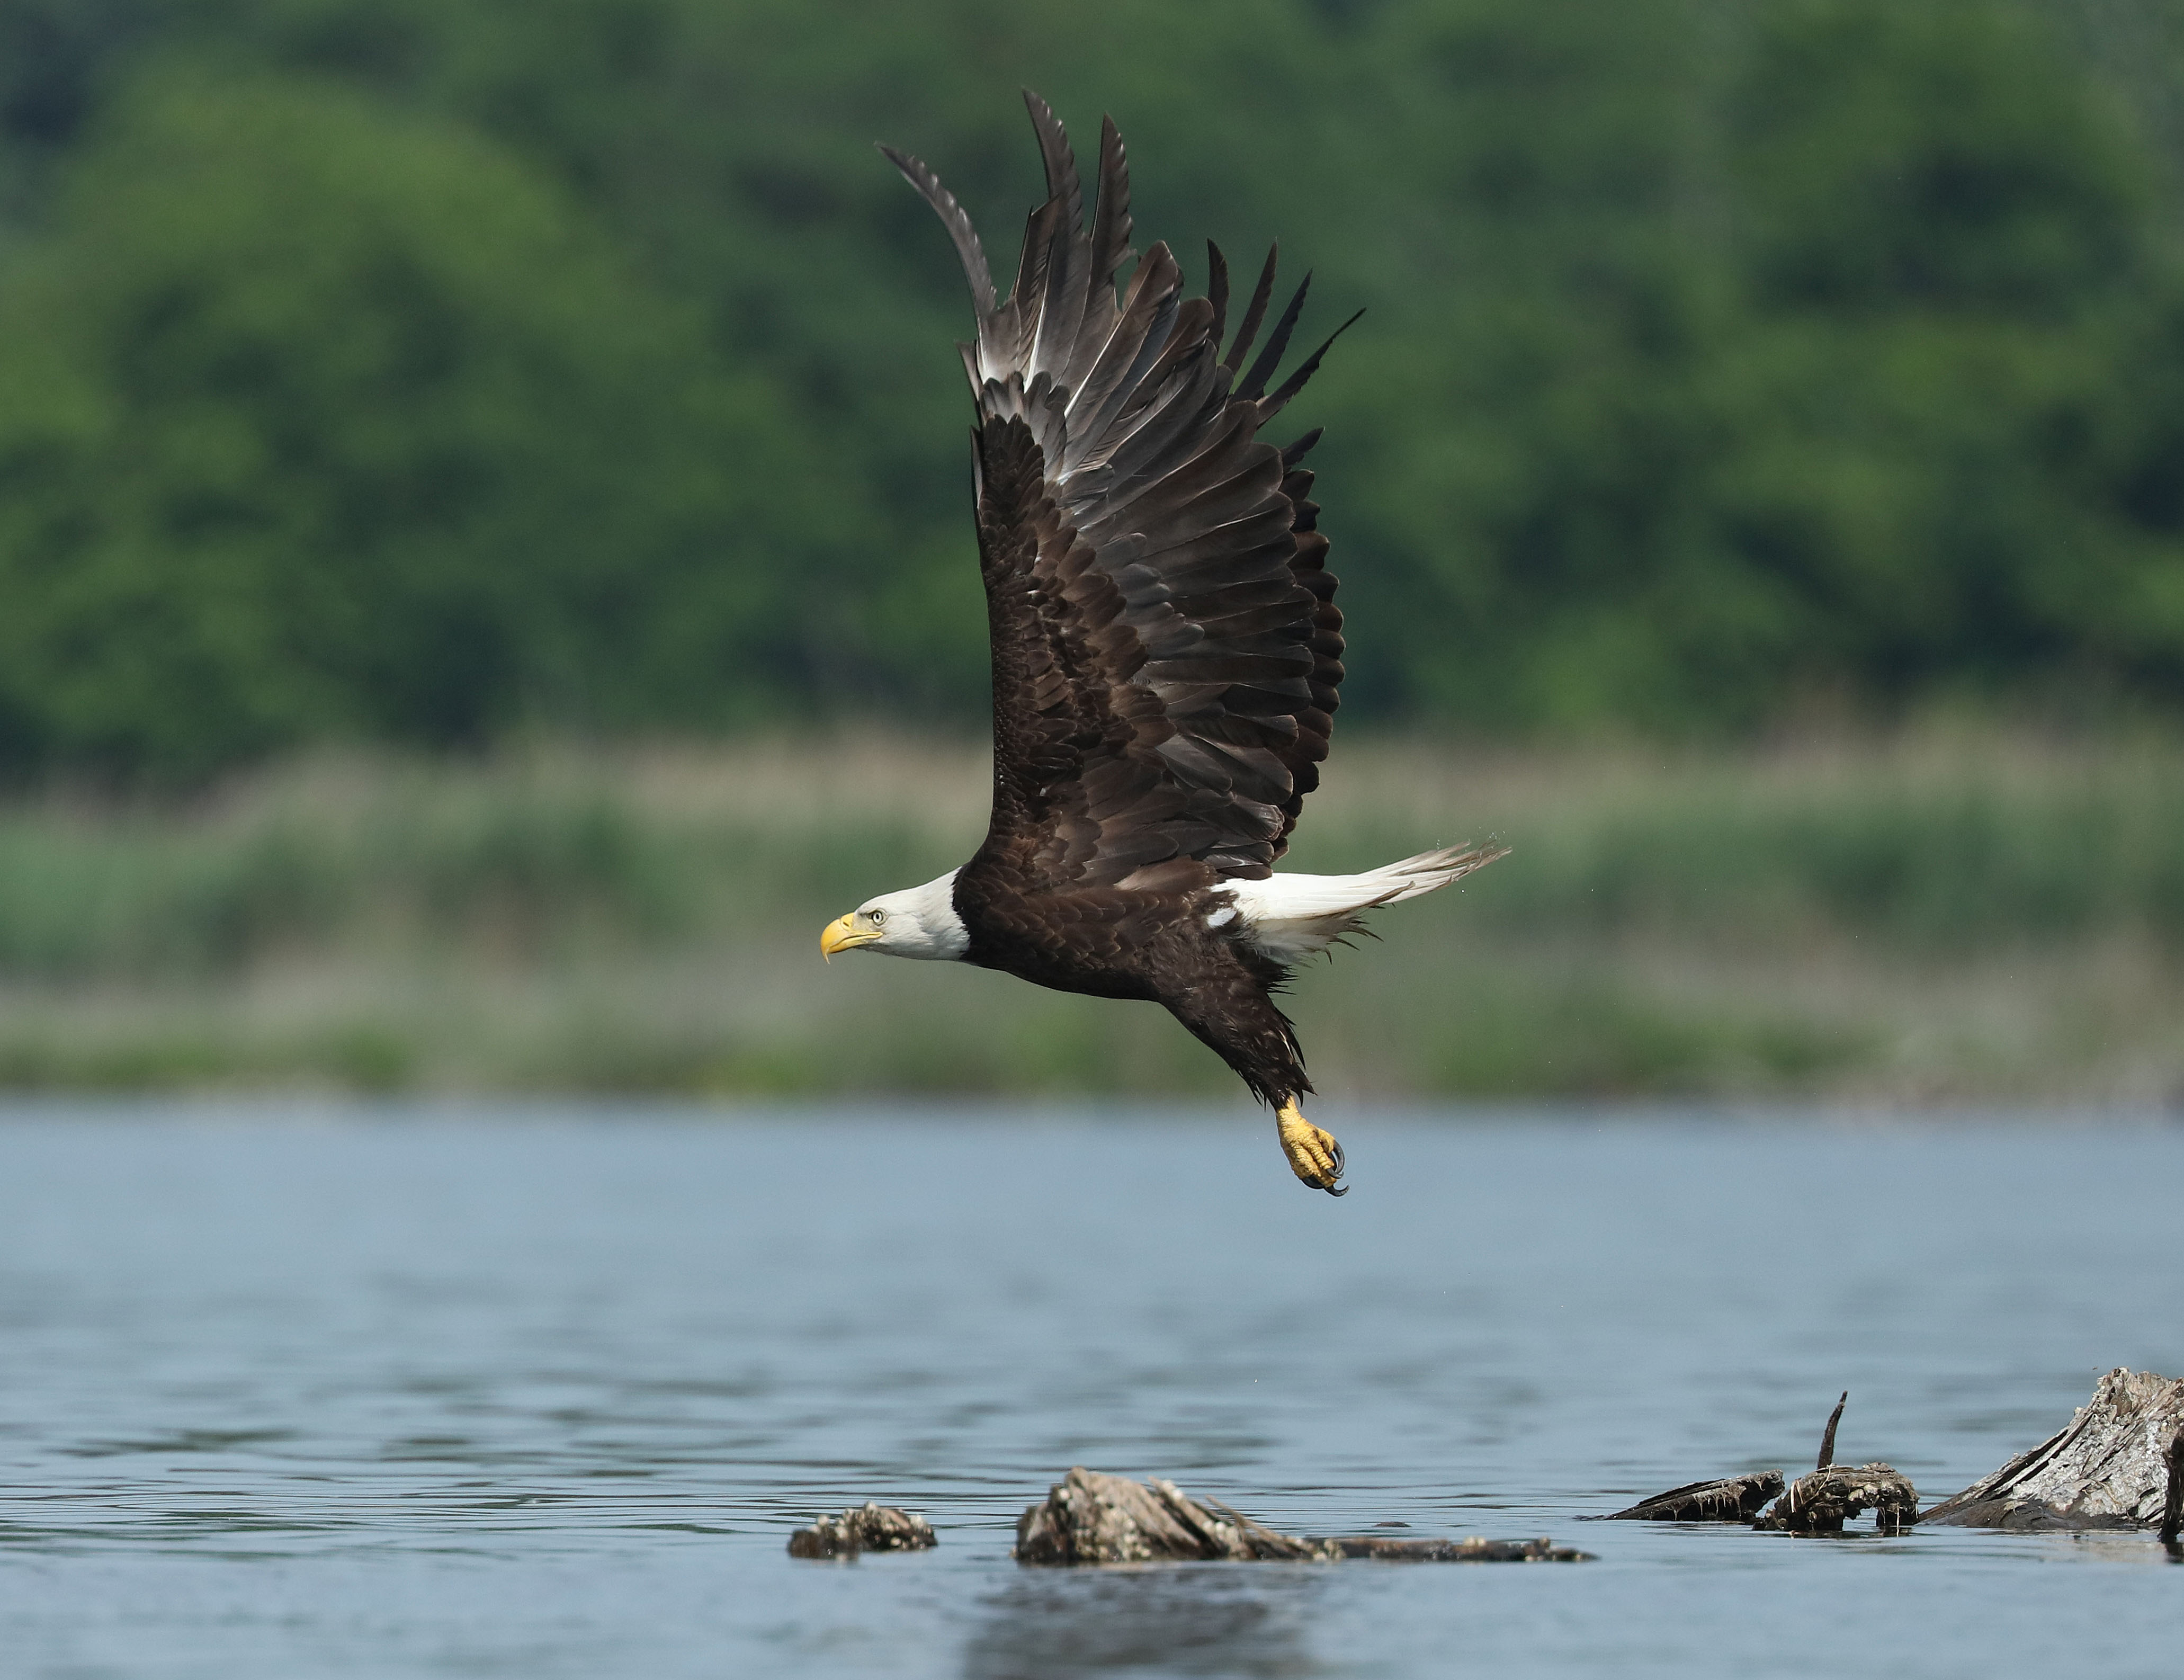 bald-eagle2-kearny-marsh-ron-shields-6-16